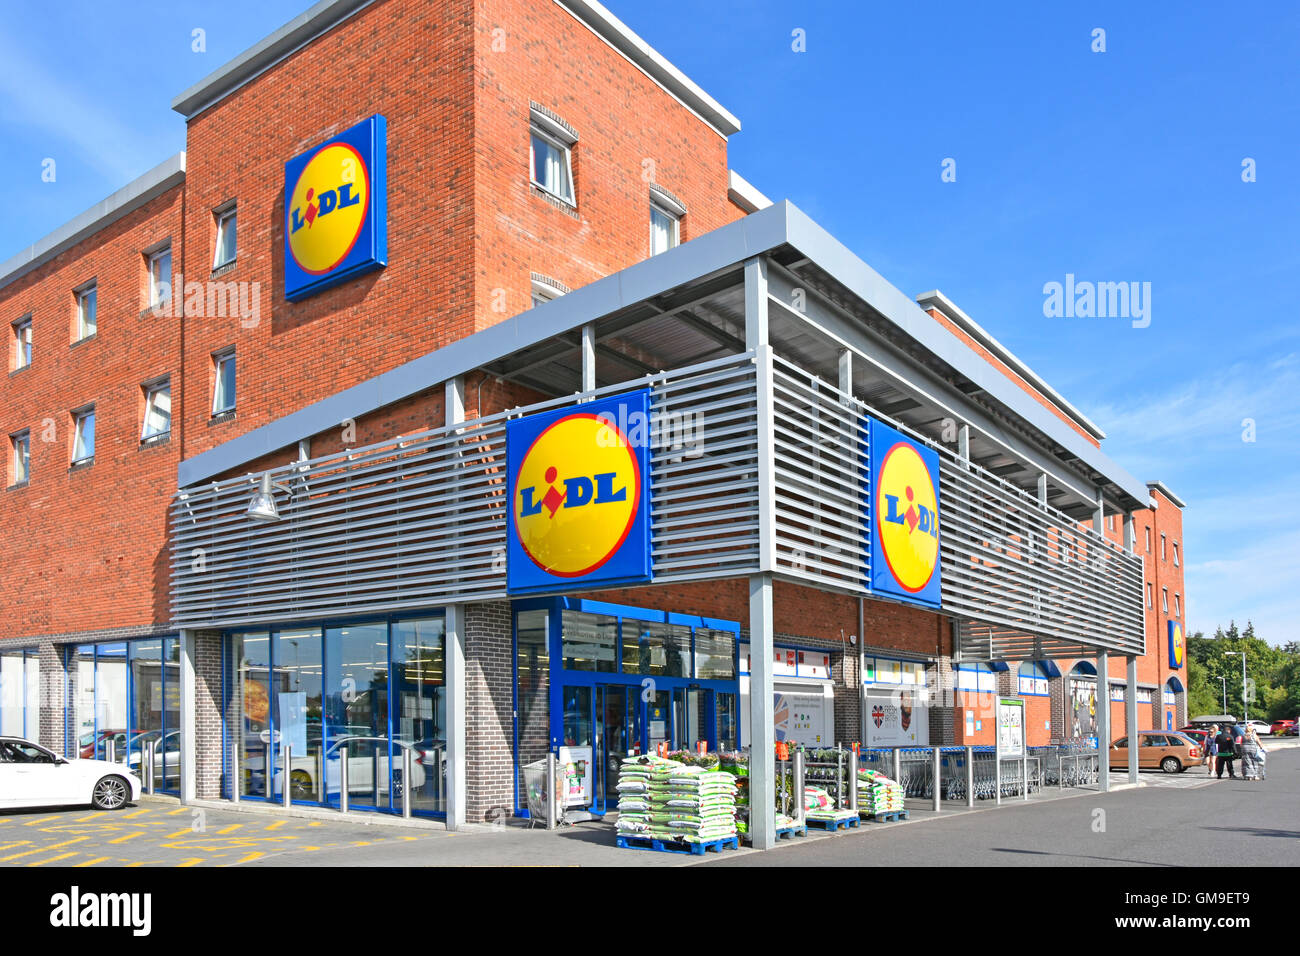 Exterior Lidl UK covered entrance to modern supermarket store on corner site with three logo panels in Tamworth - Stock Image